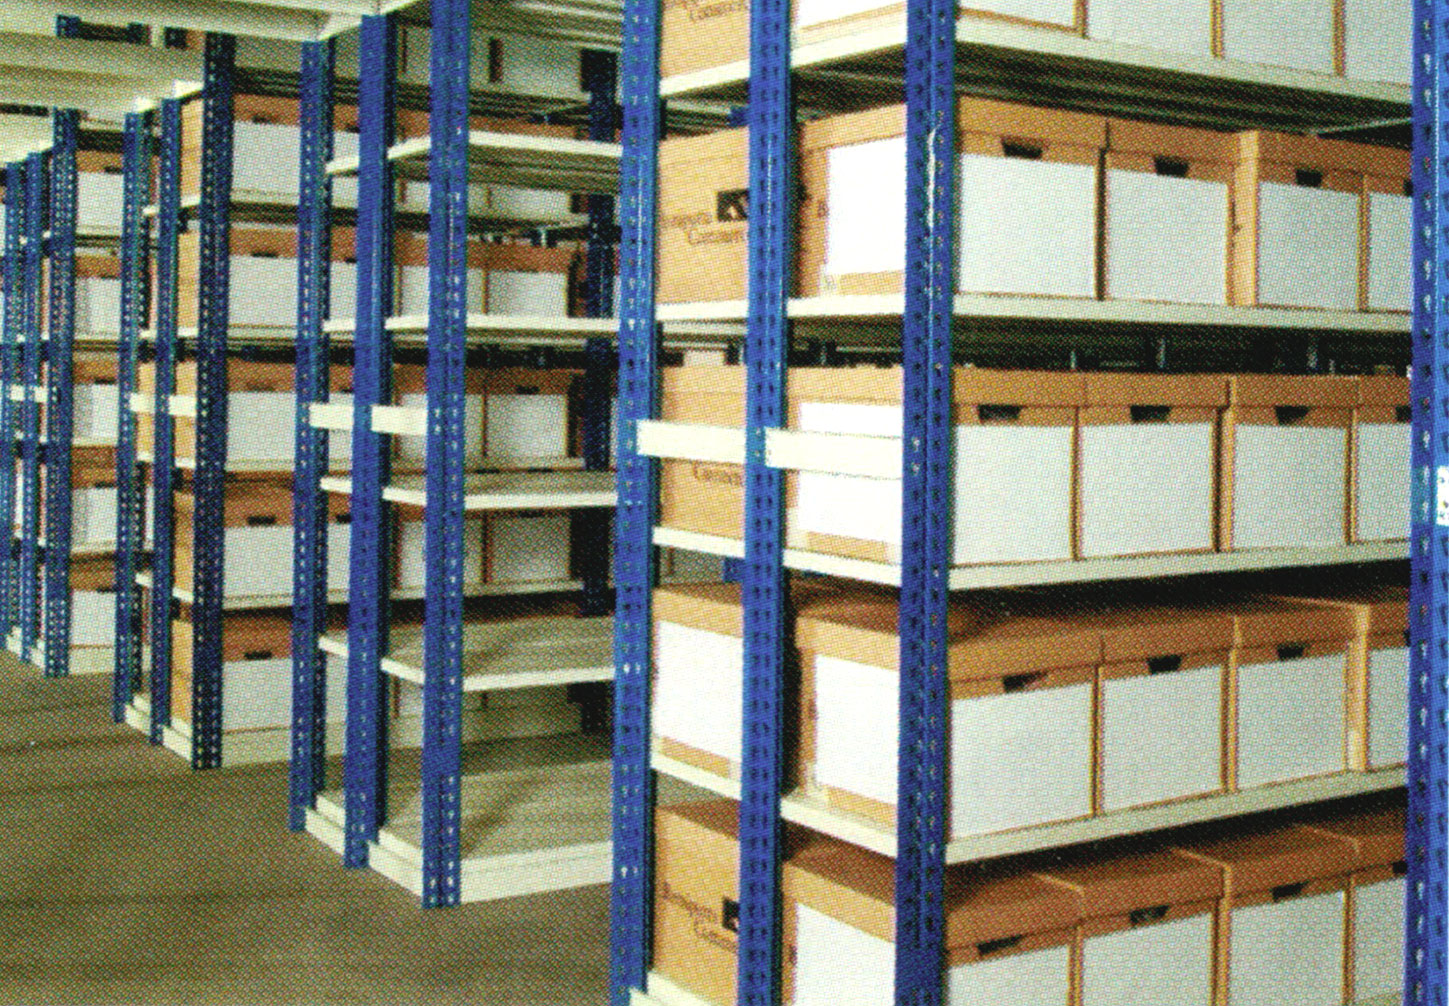 Boltless Shelving System for an Archieve Storage Facility